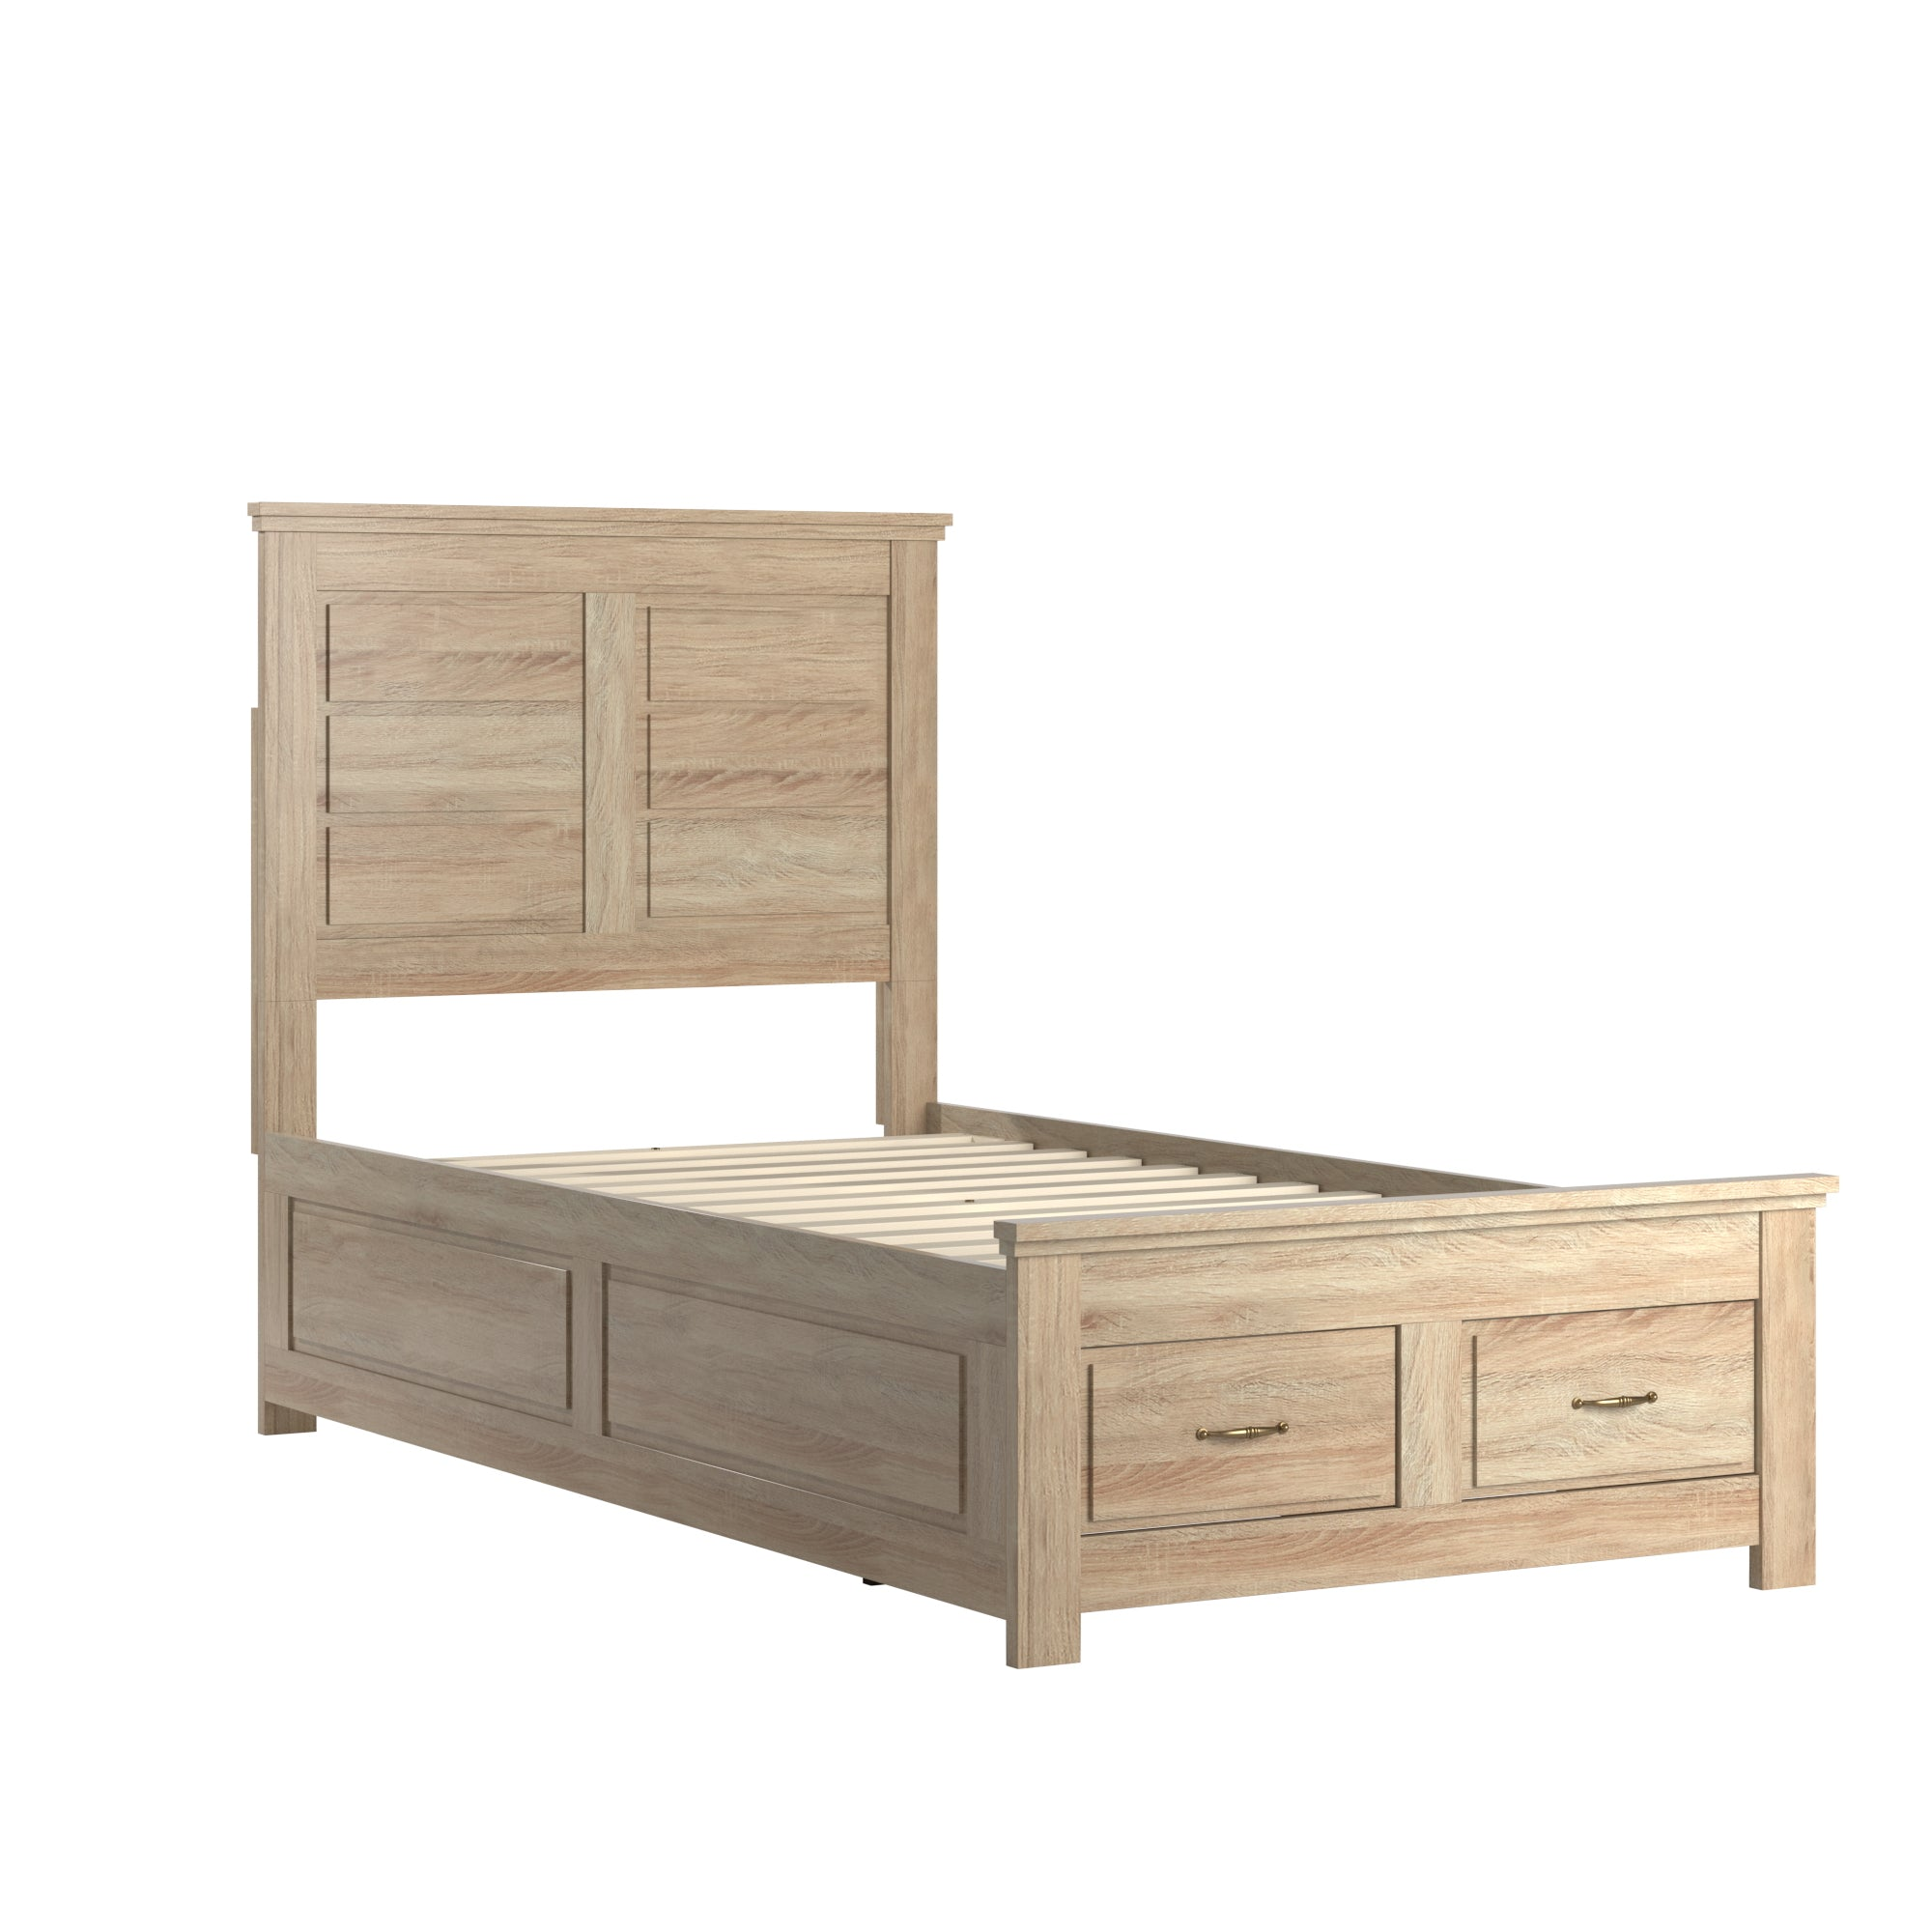 Wood Panel Platform Bed with Storage - Twin Size - Oak Finish